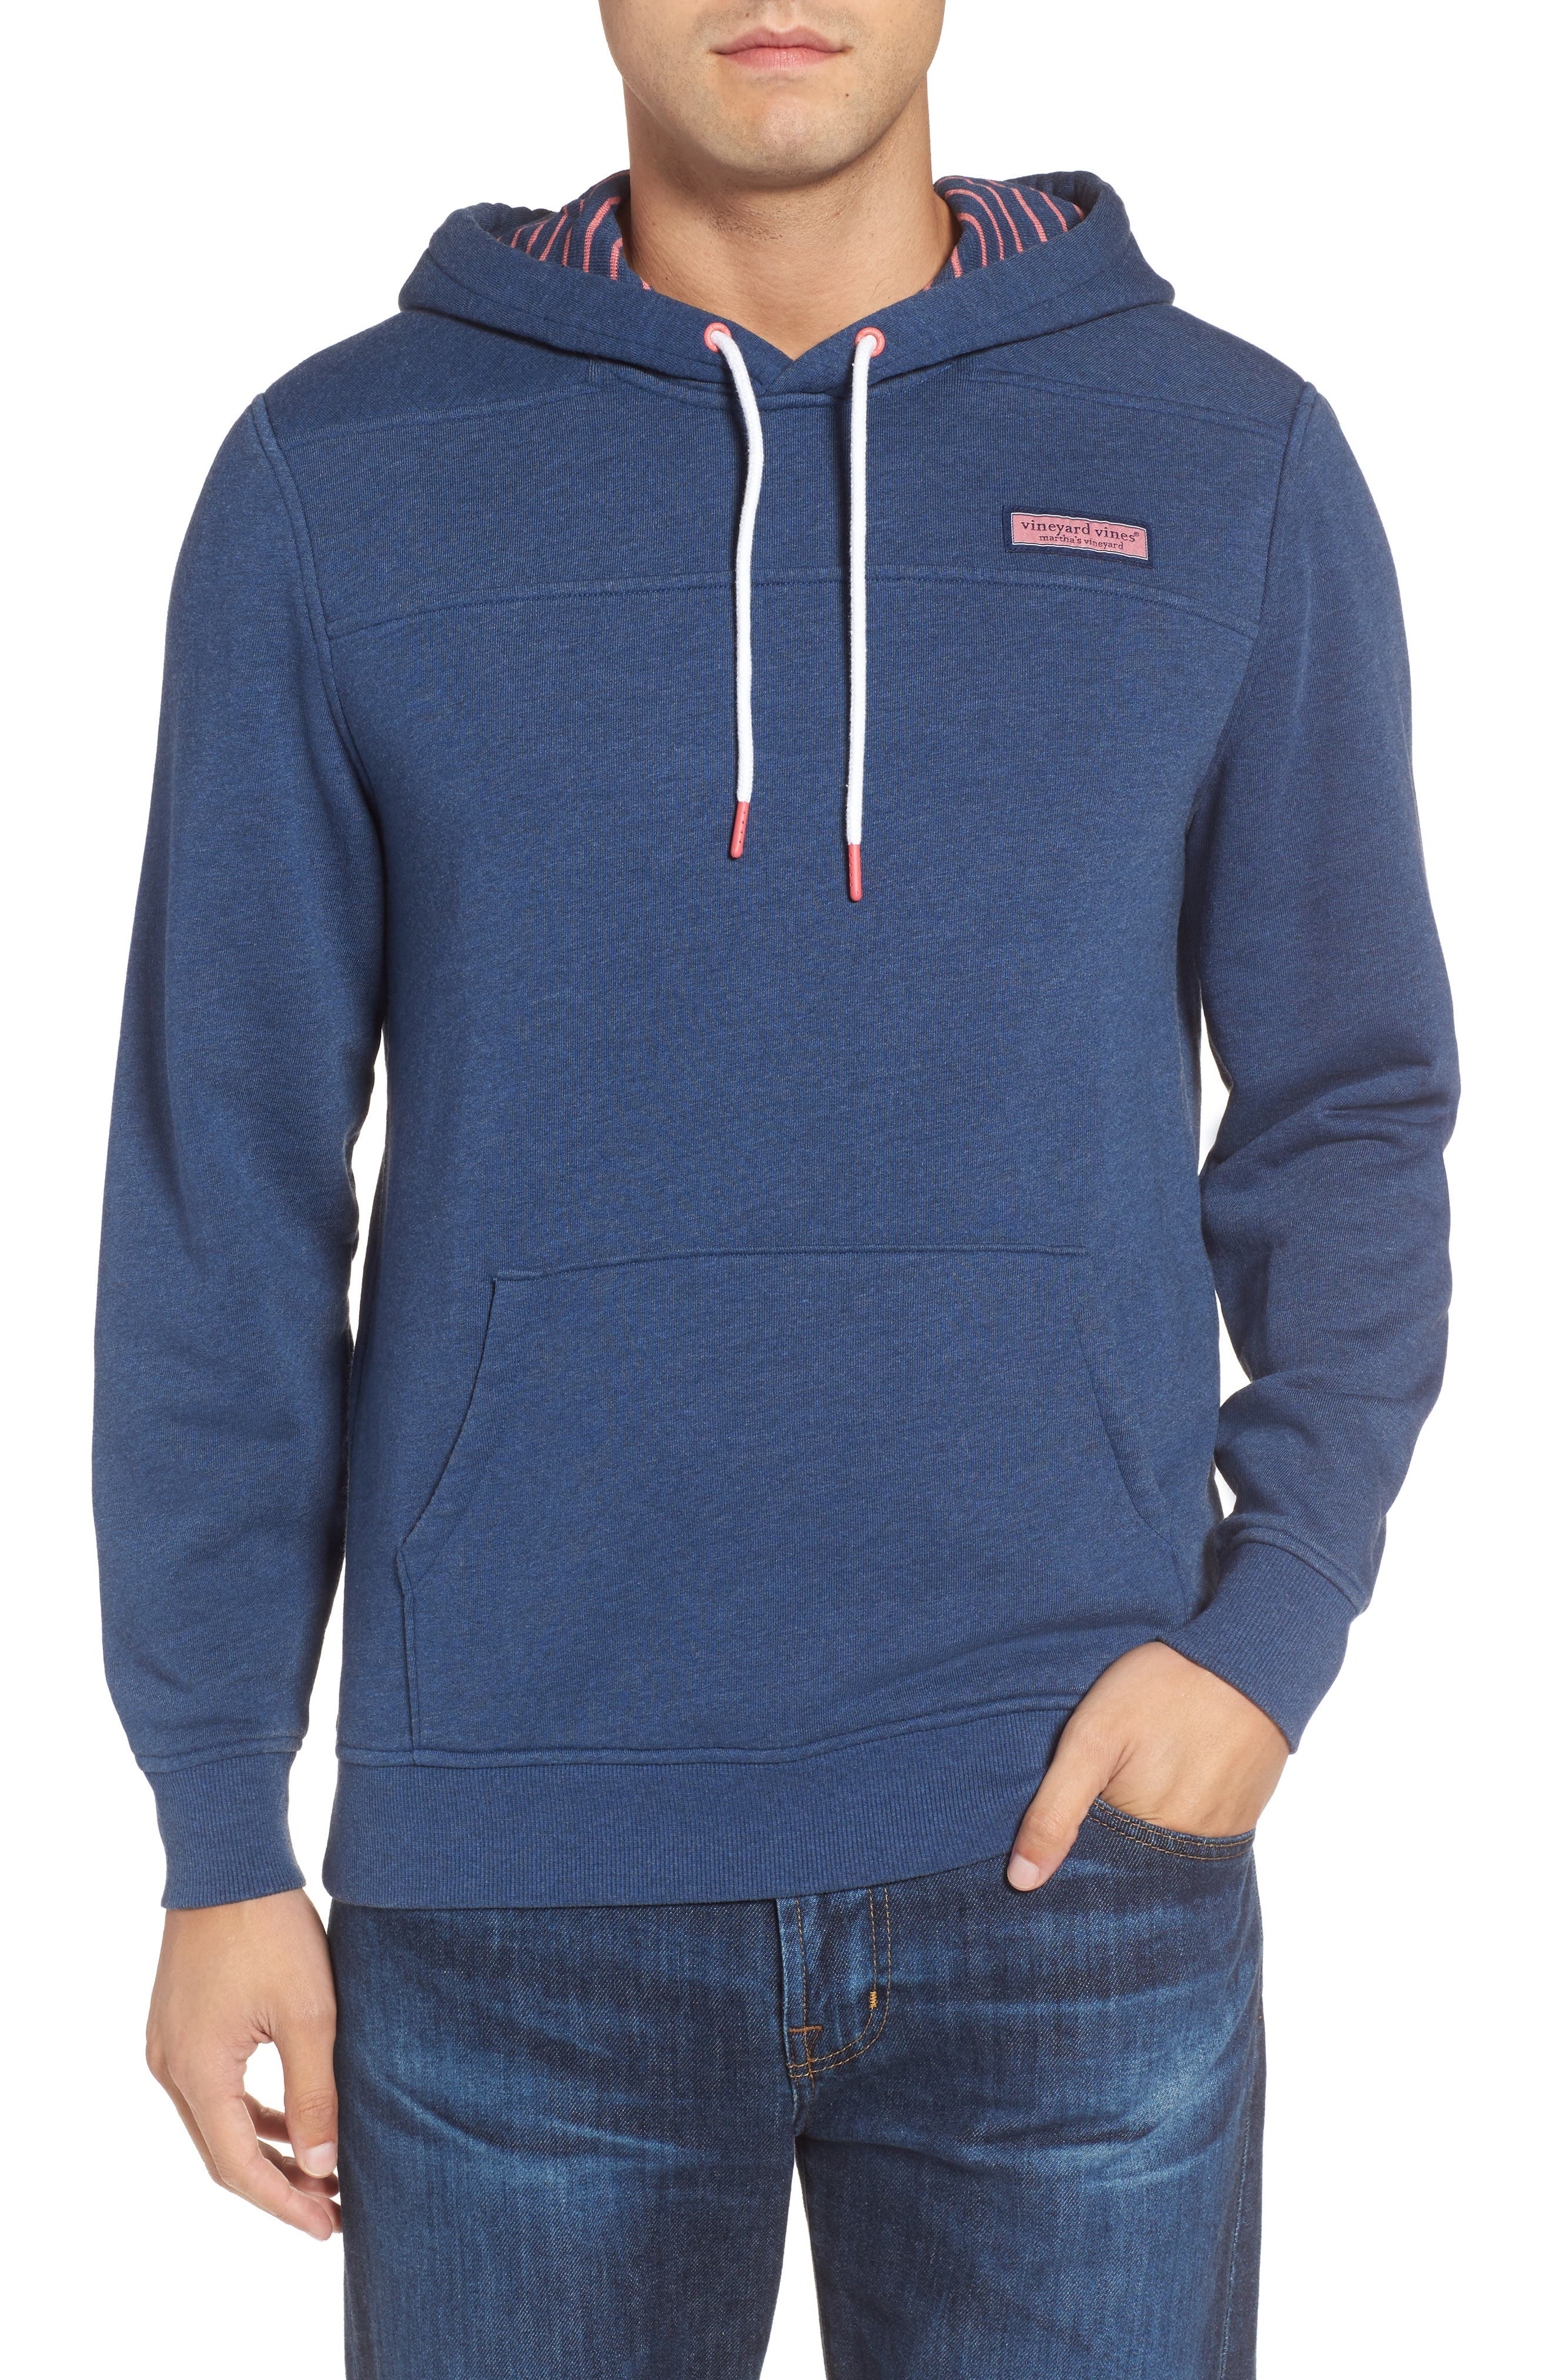 Alternate Image 1 Selected - vineyard vines Washed Cotton Pullover Hoodie